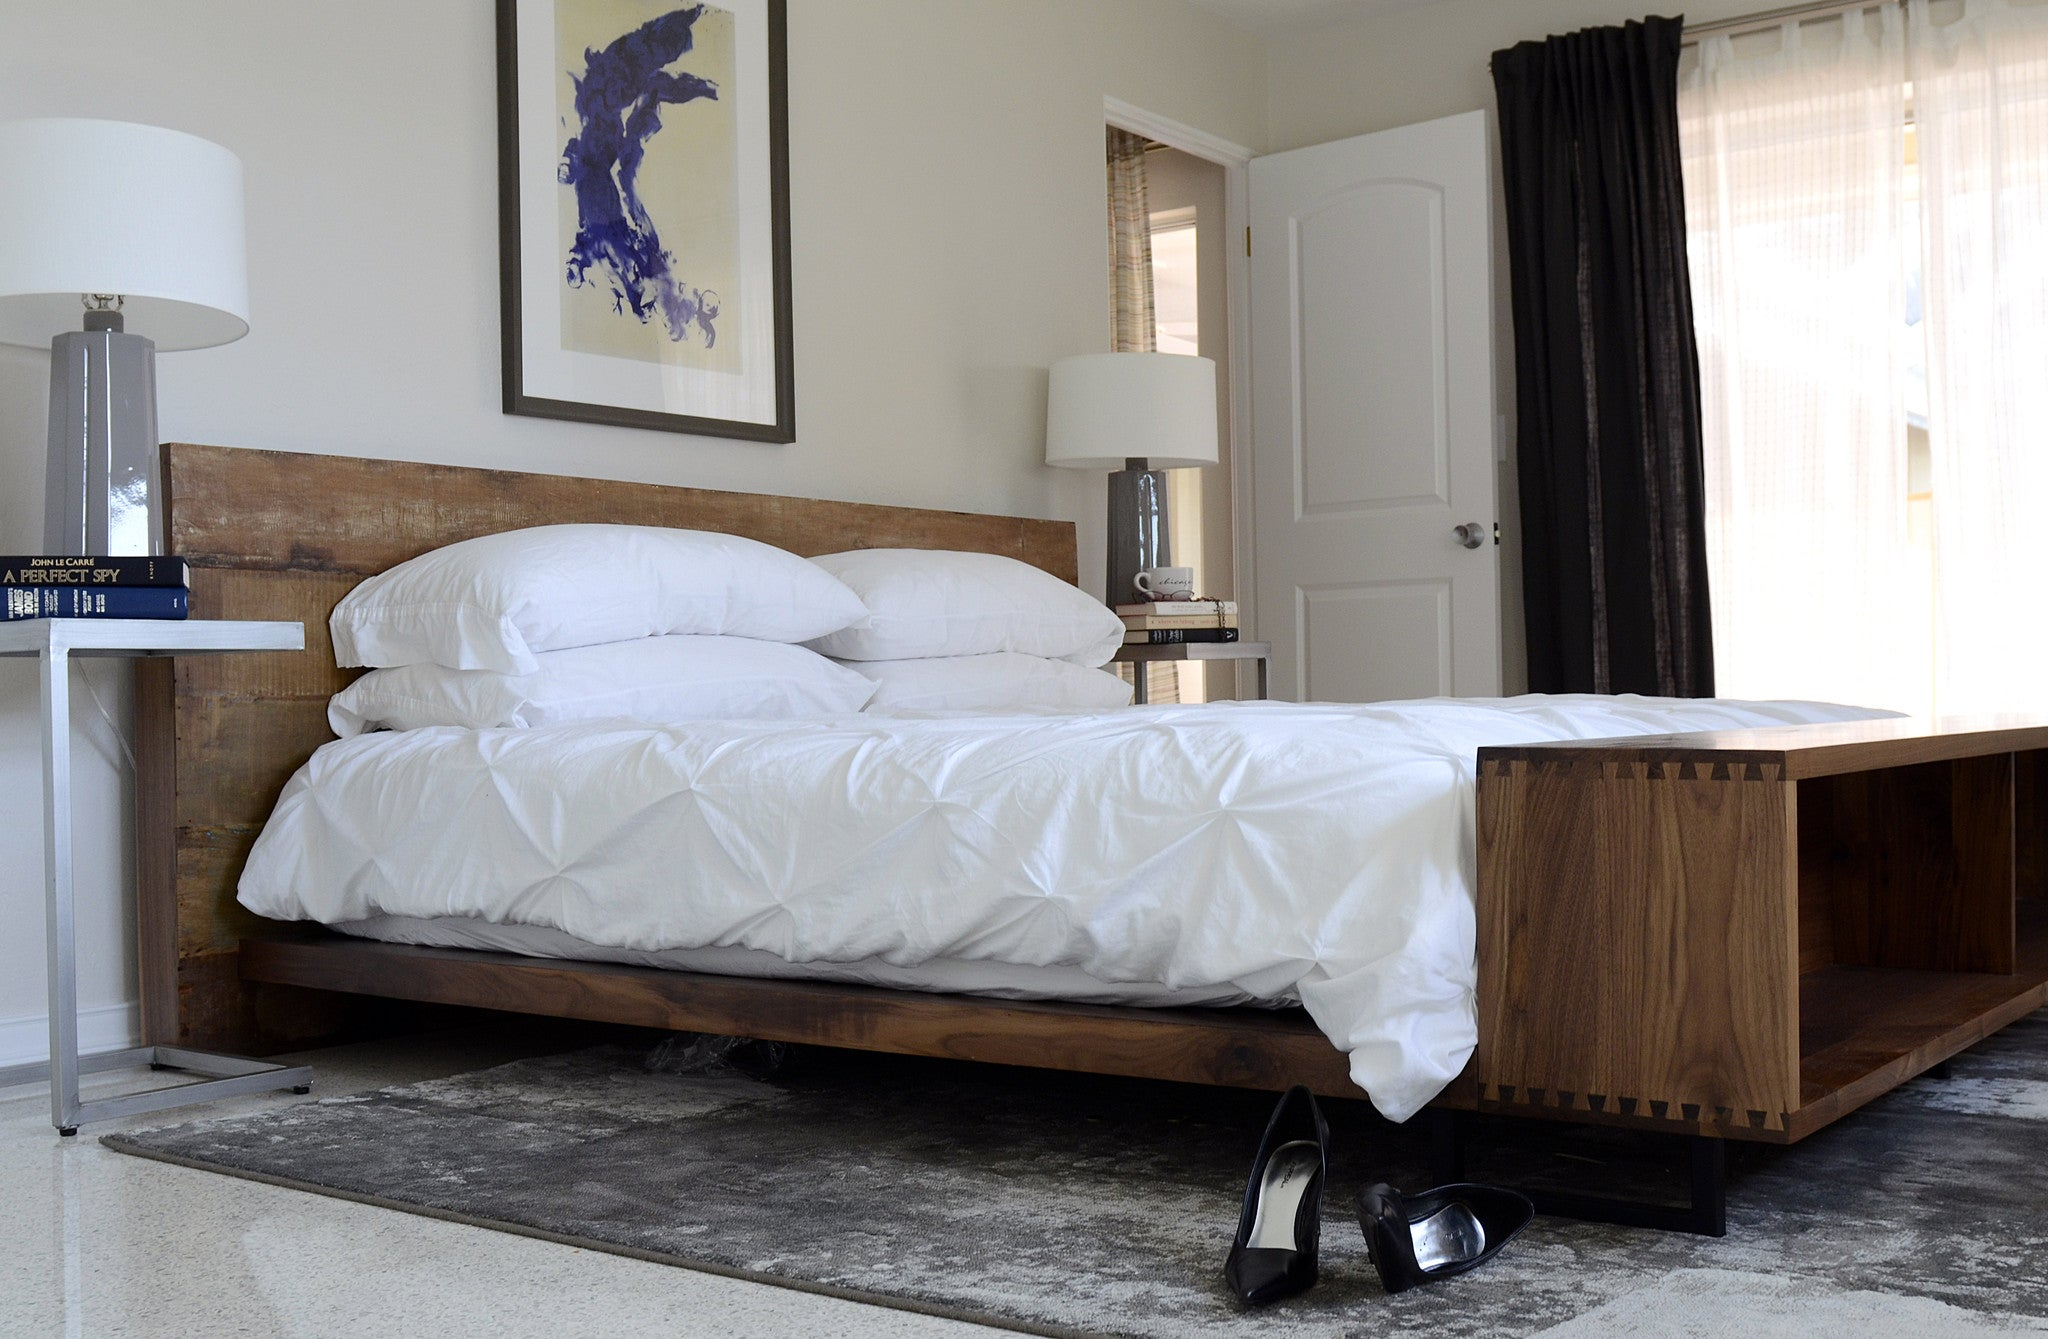 mid century modern furniture curated by professional designers - beds